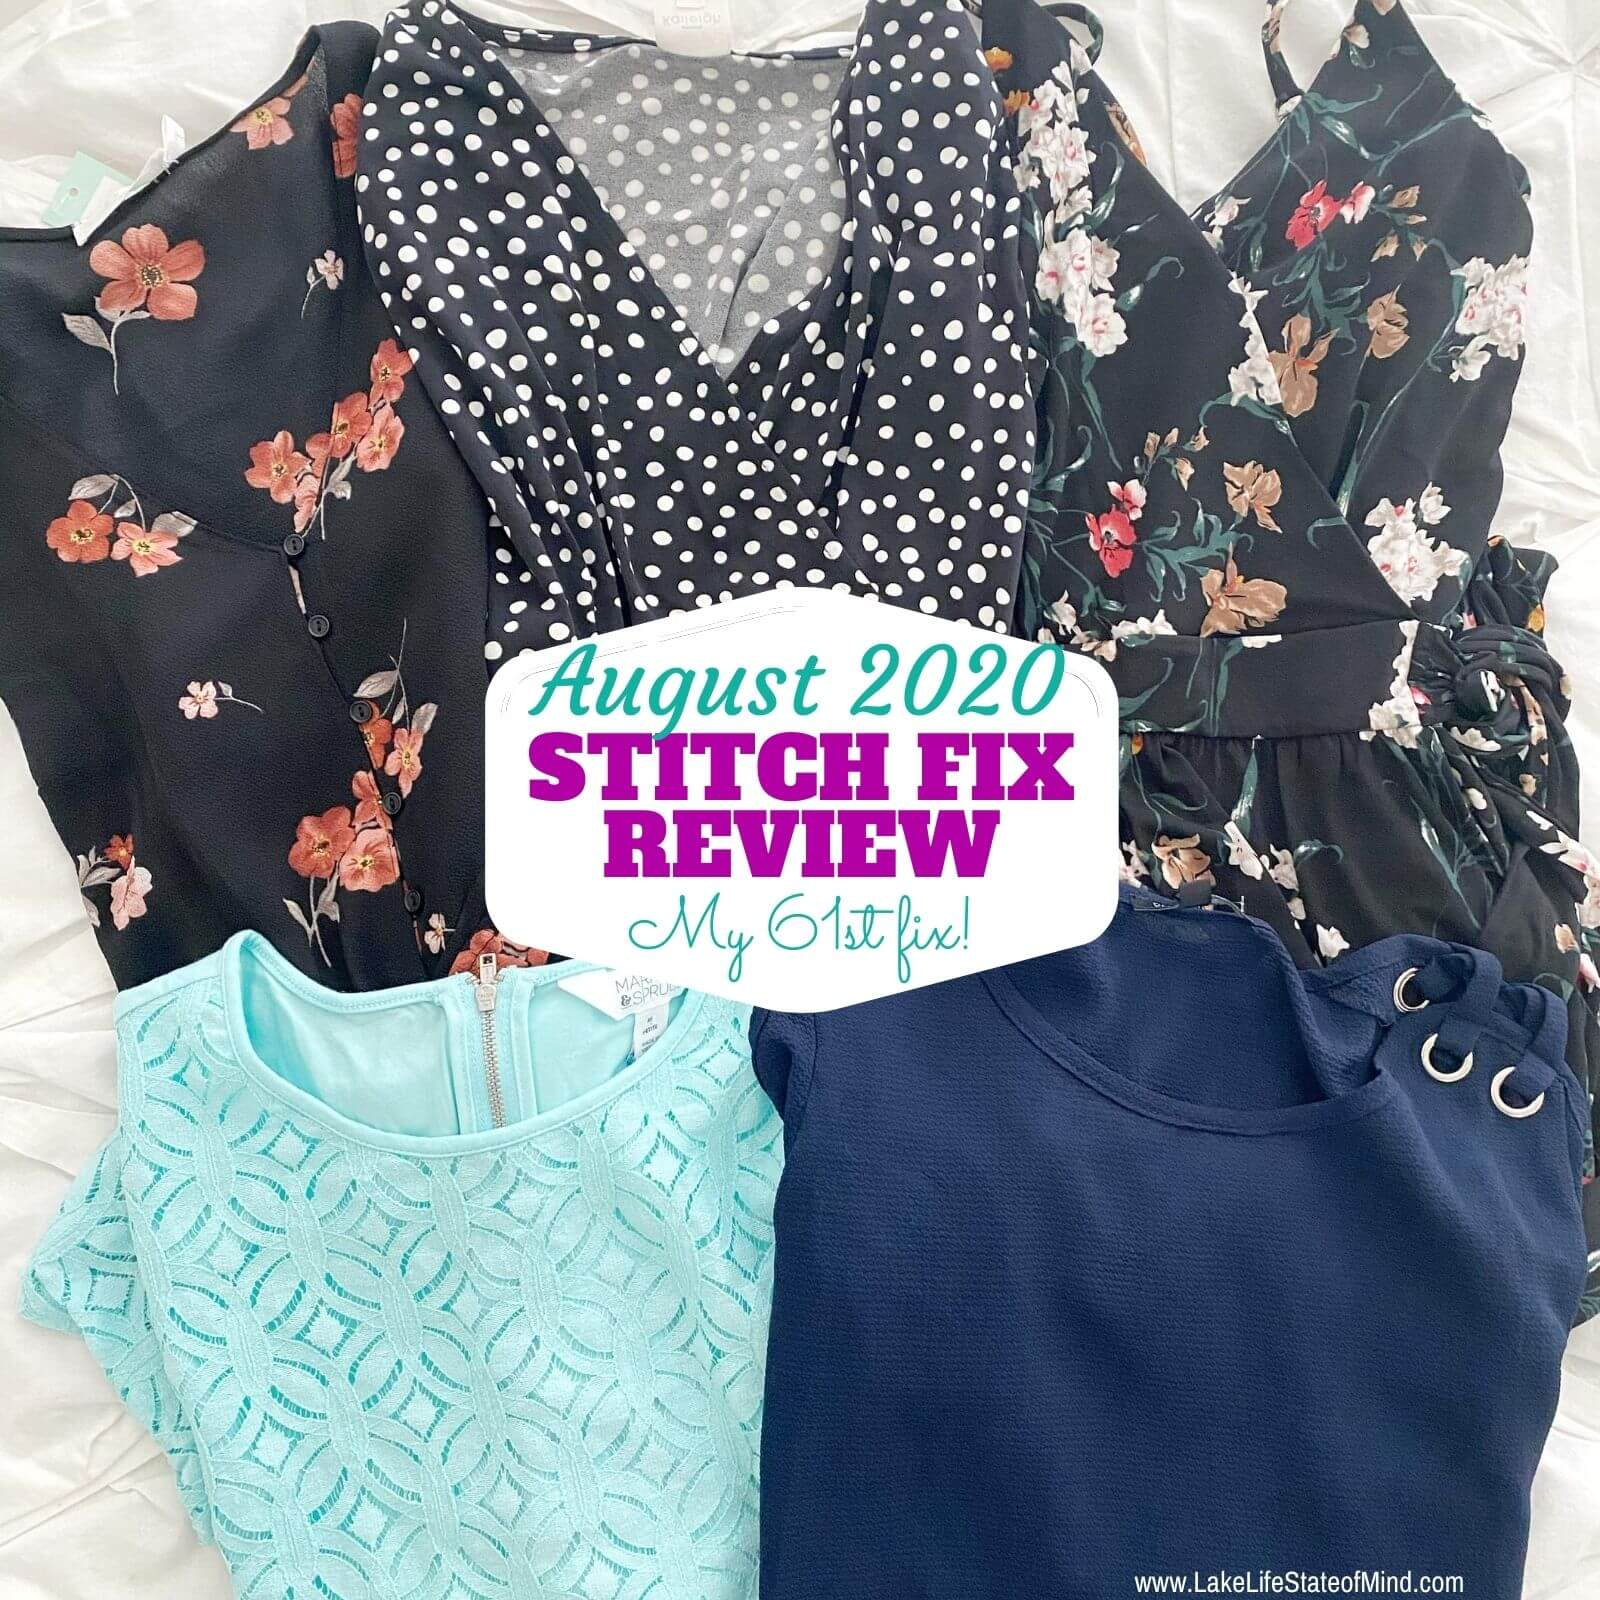 Stitch Fix Box Review for August 2020